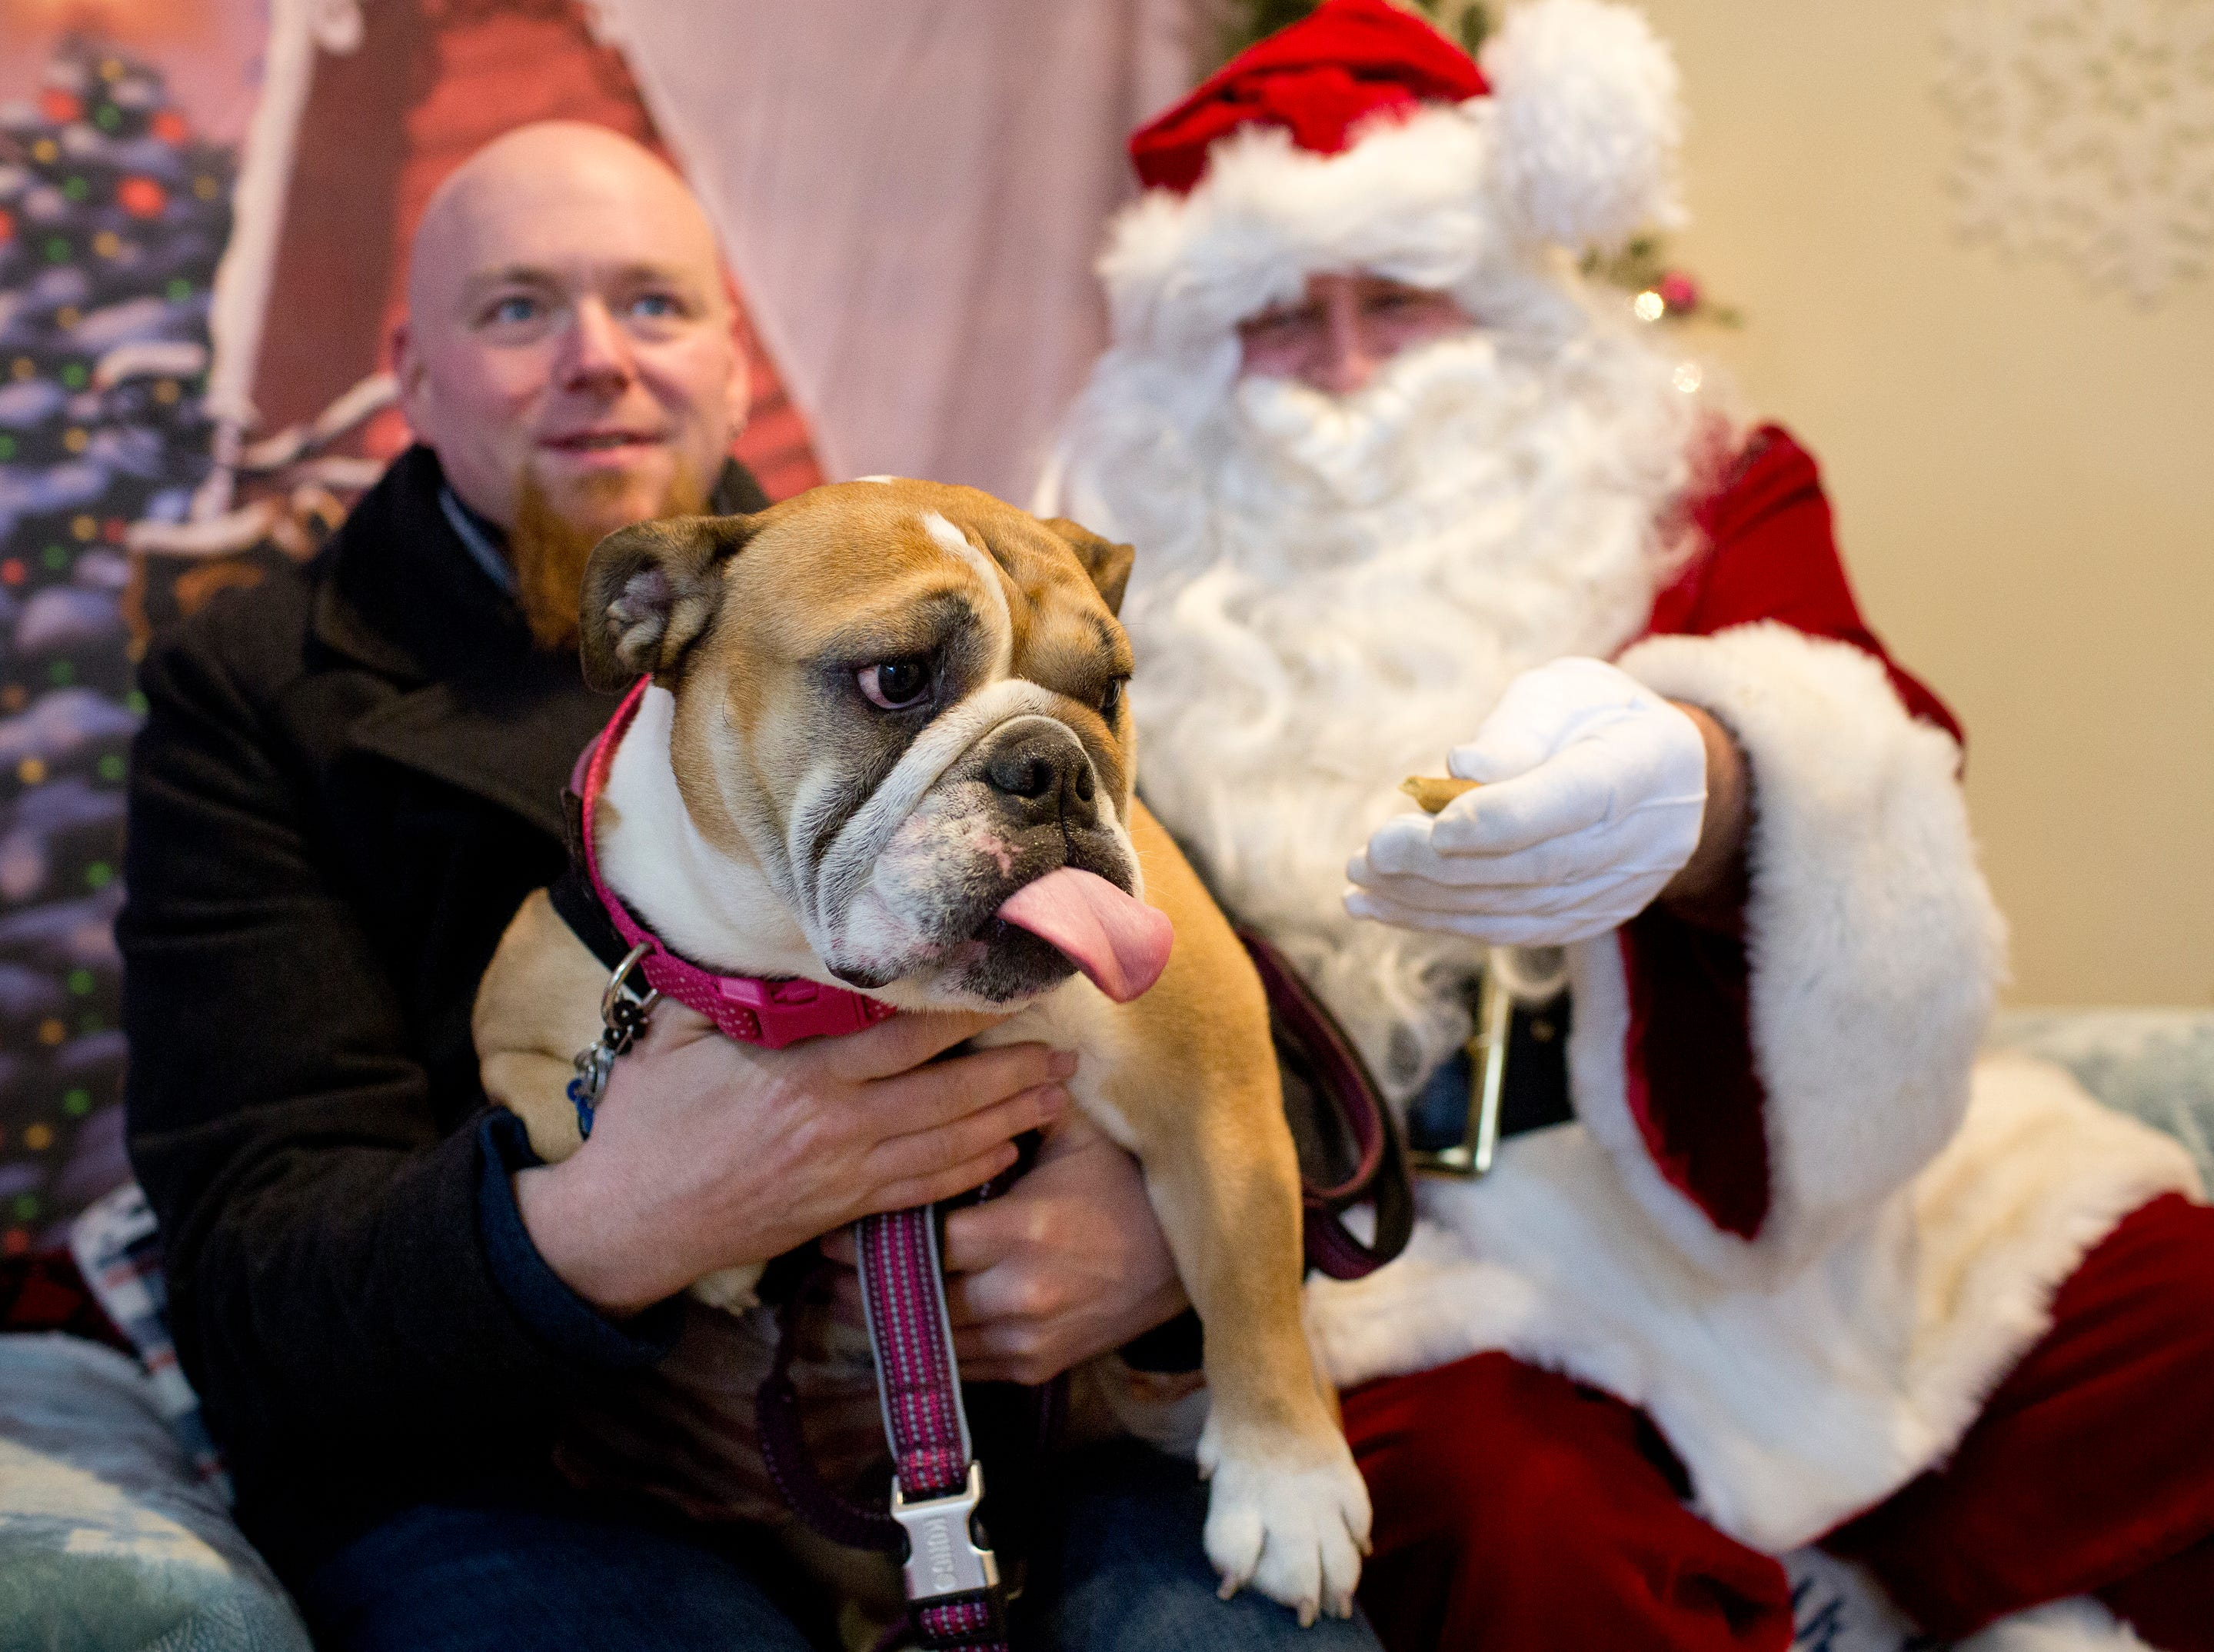 Penny, a five year old English Bull dog, checks out the treat that Santa Claus offers with her tongue but doesn't move too far from her owner Jason Guy of Midland Park during the Santa Paws photo session for pets at the Rampo-Bergen Animal Refuge Inc. in Oakland on Saturday, Dec. 1, 2018. Sponsored by Allstate, all proceeds from the photo sessions go directly towards the care of animals rescued by RBARI.